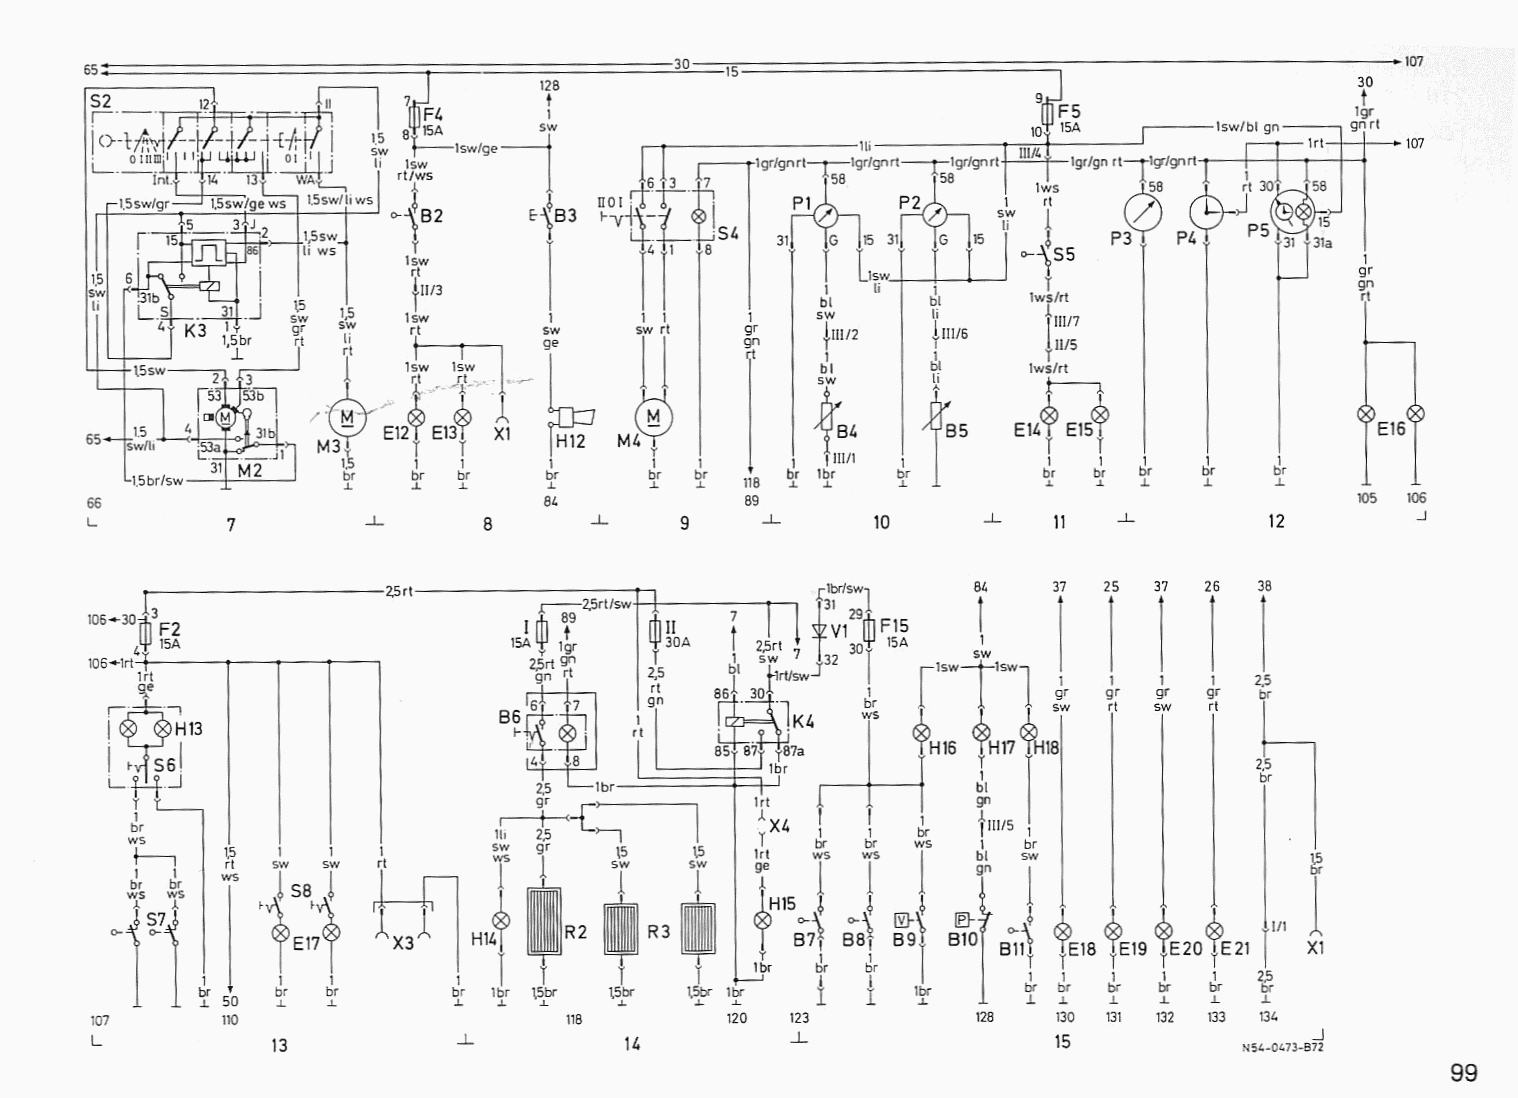 sprinter wiring diagrams for alternators mercedes sprinter wiring diagram pdf | free wiring diagram 2005 sprinter wiring diagrams